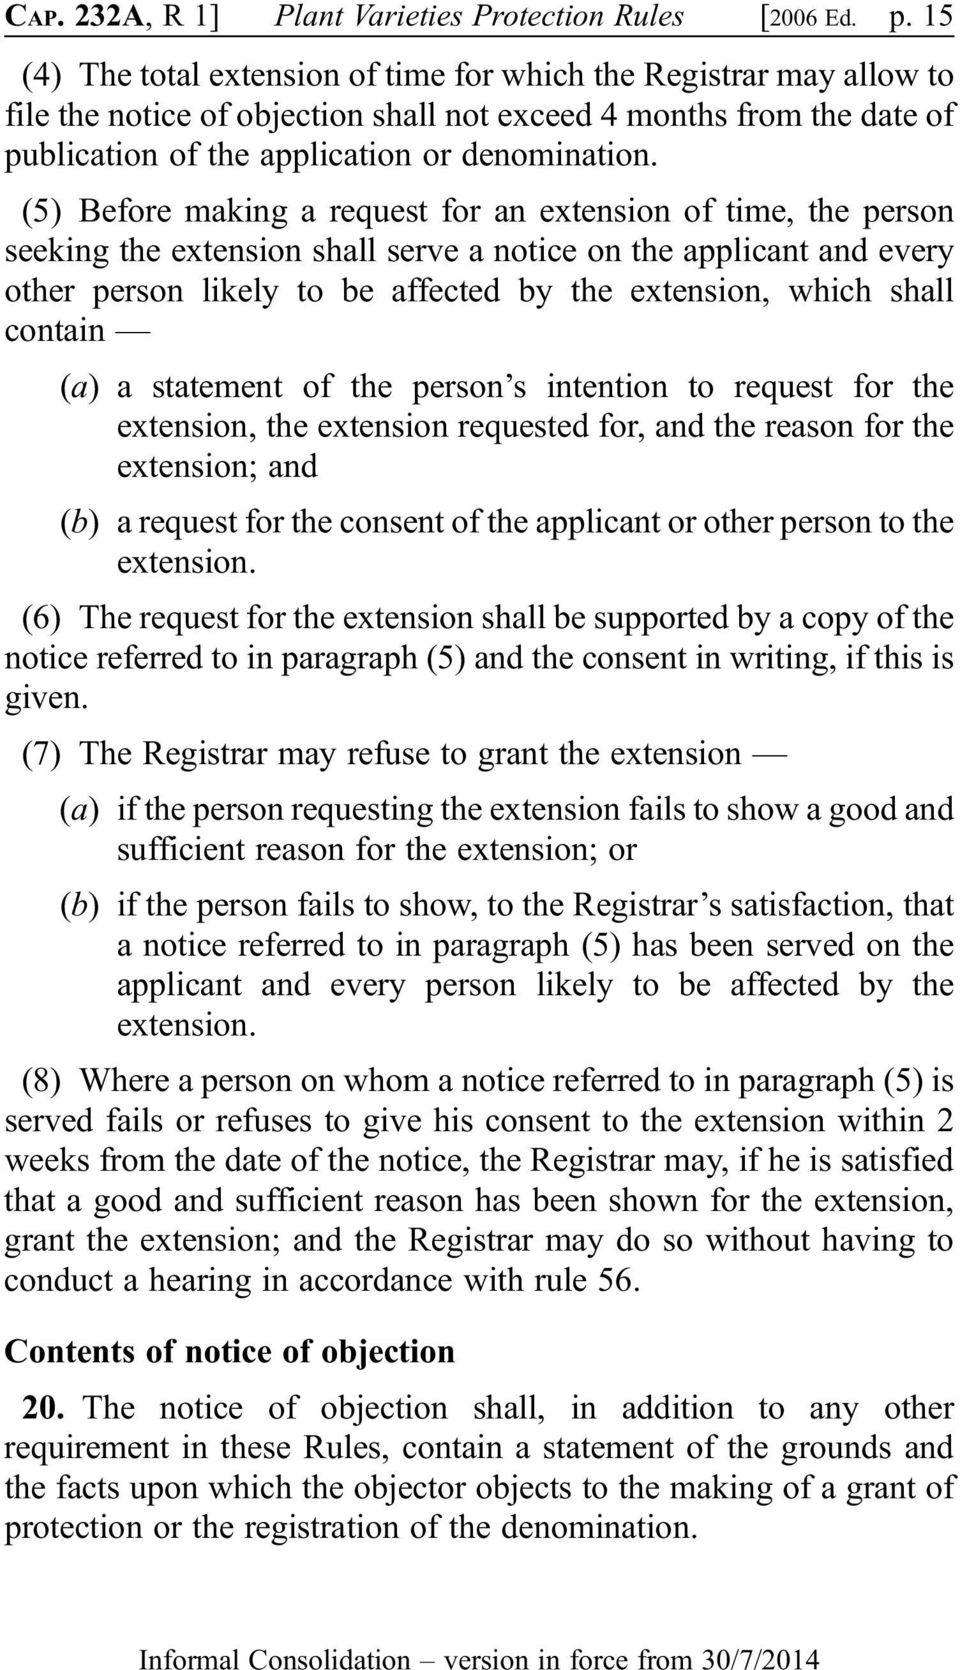 (5) Before making a request for an extension of time, the person seeking the extension shall serve a notice on the applicant and every other person likely to be affected by the extension, which shall